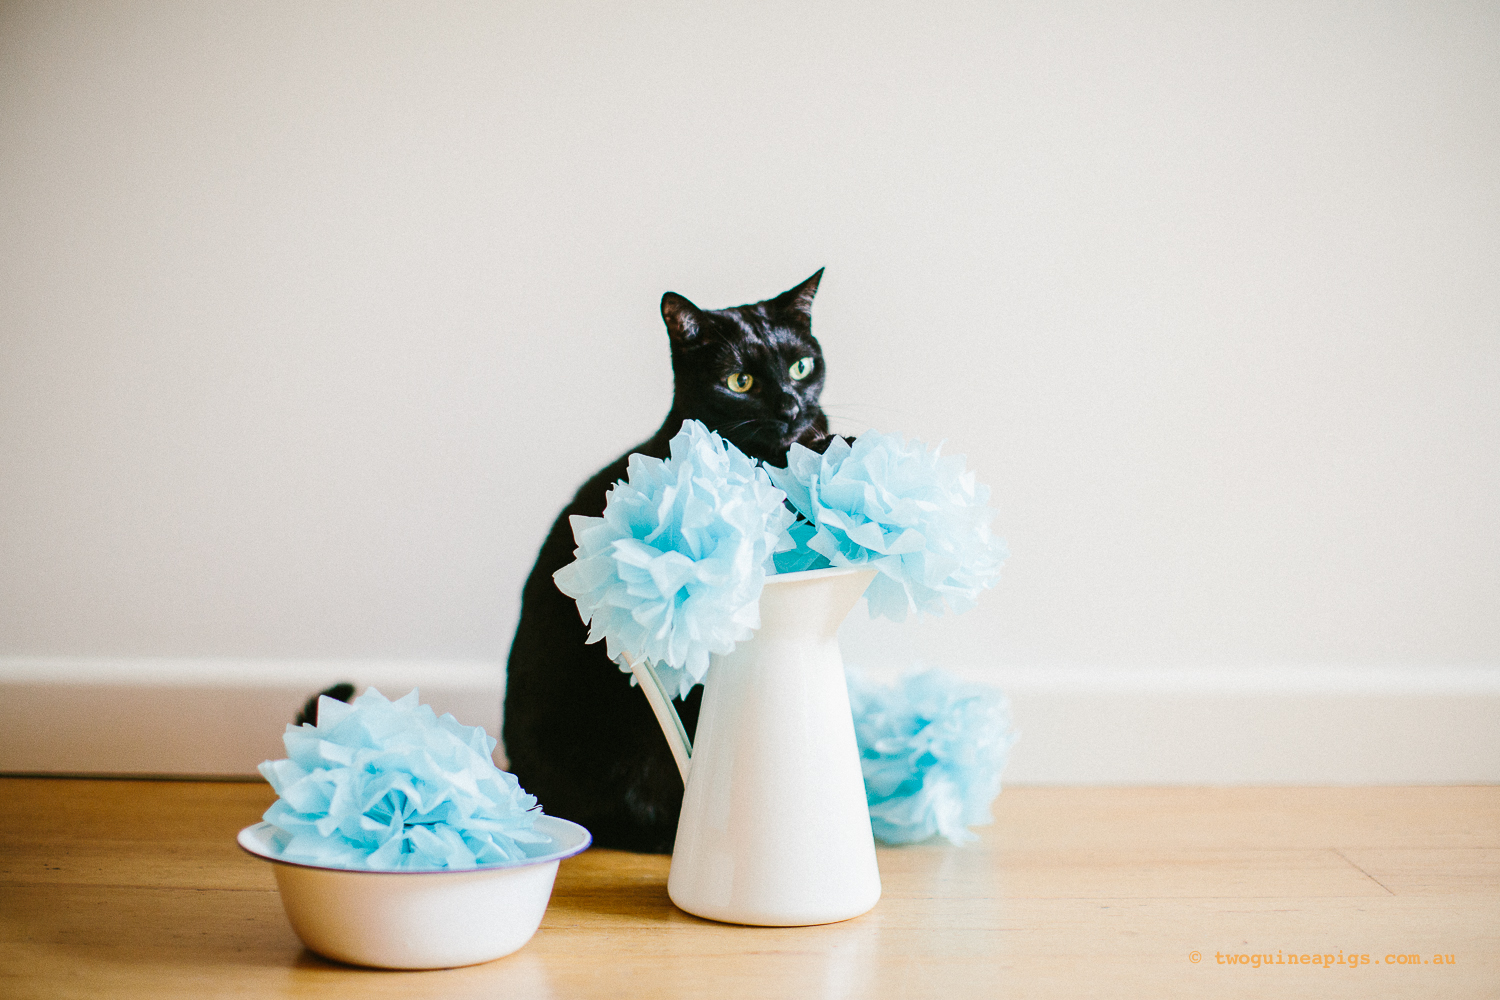 twoguineapigs_pet_photography_ruby_slipper_cat_floral_series_TEST_1500-34.jpg